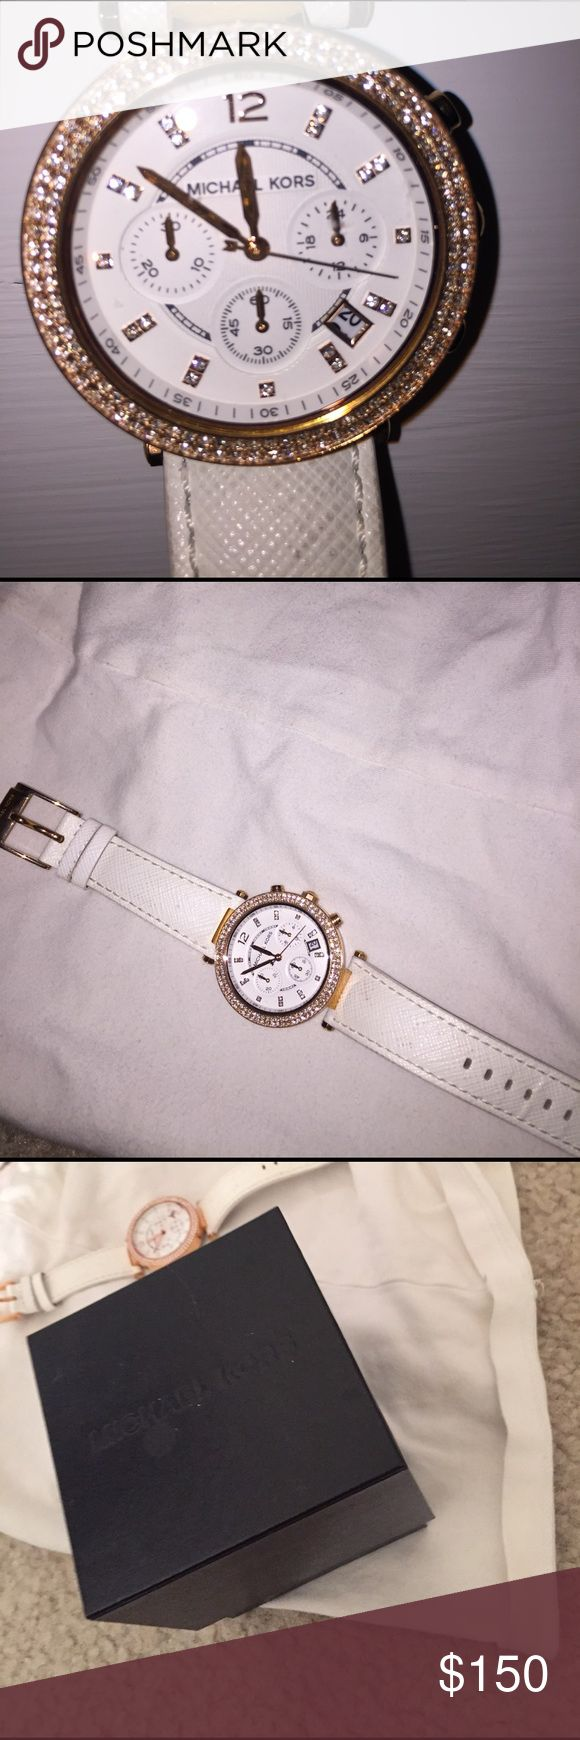 NEW Michael Kors watch Brand new Michael kors leather watch.  White leather with beautiful rose gold metal.  Diamond detailing.  Very unique, trendy and perfect for a trendsetter.  In brand new condition! Comes with extra pieces to change size.  AUTHENTIC Michael Kors Accessories Watches